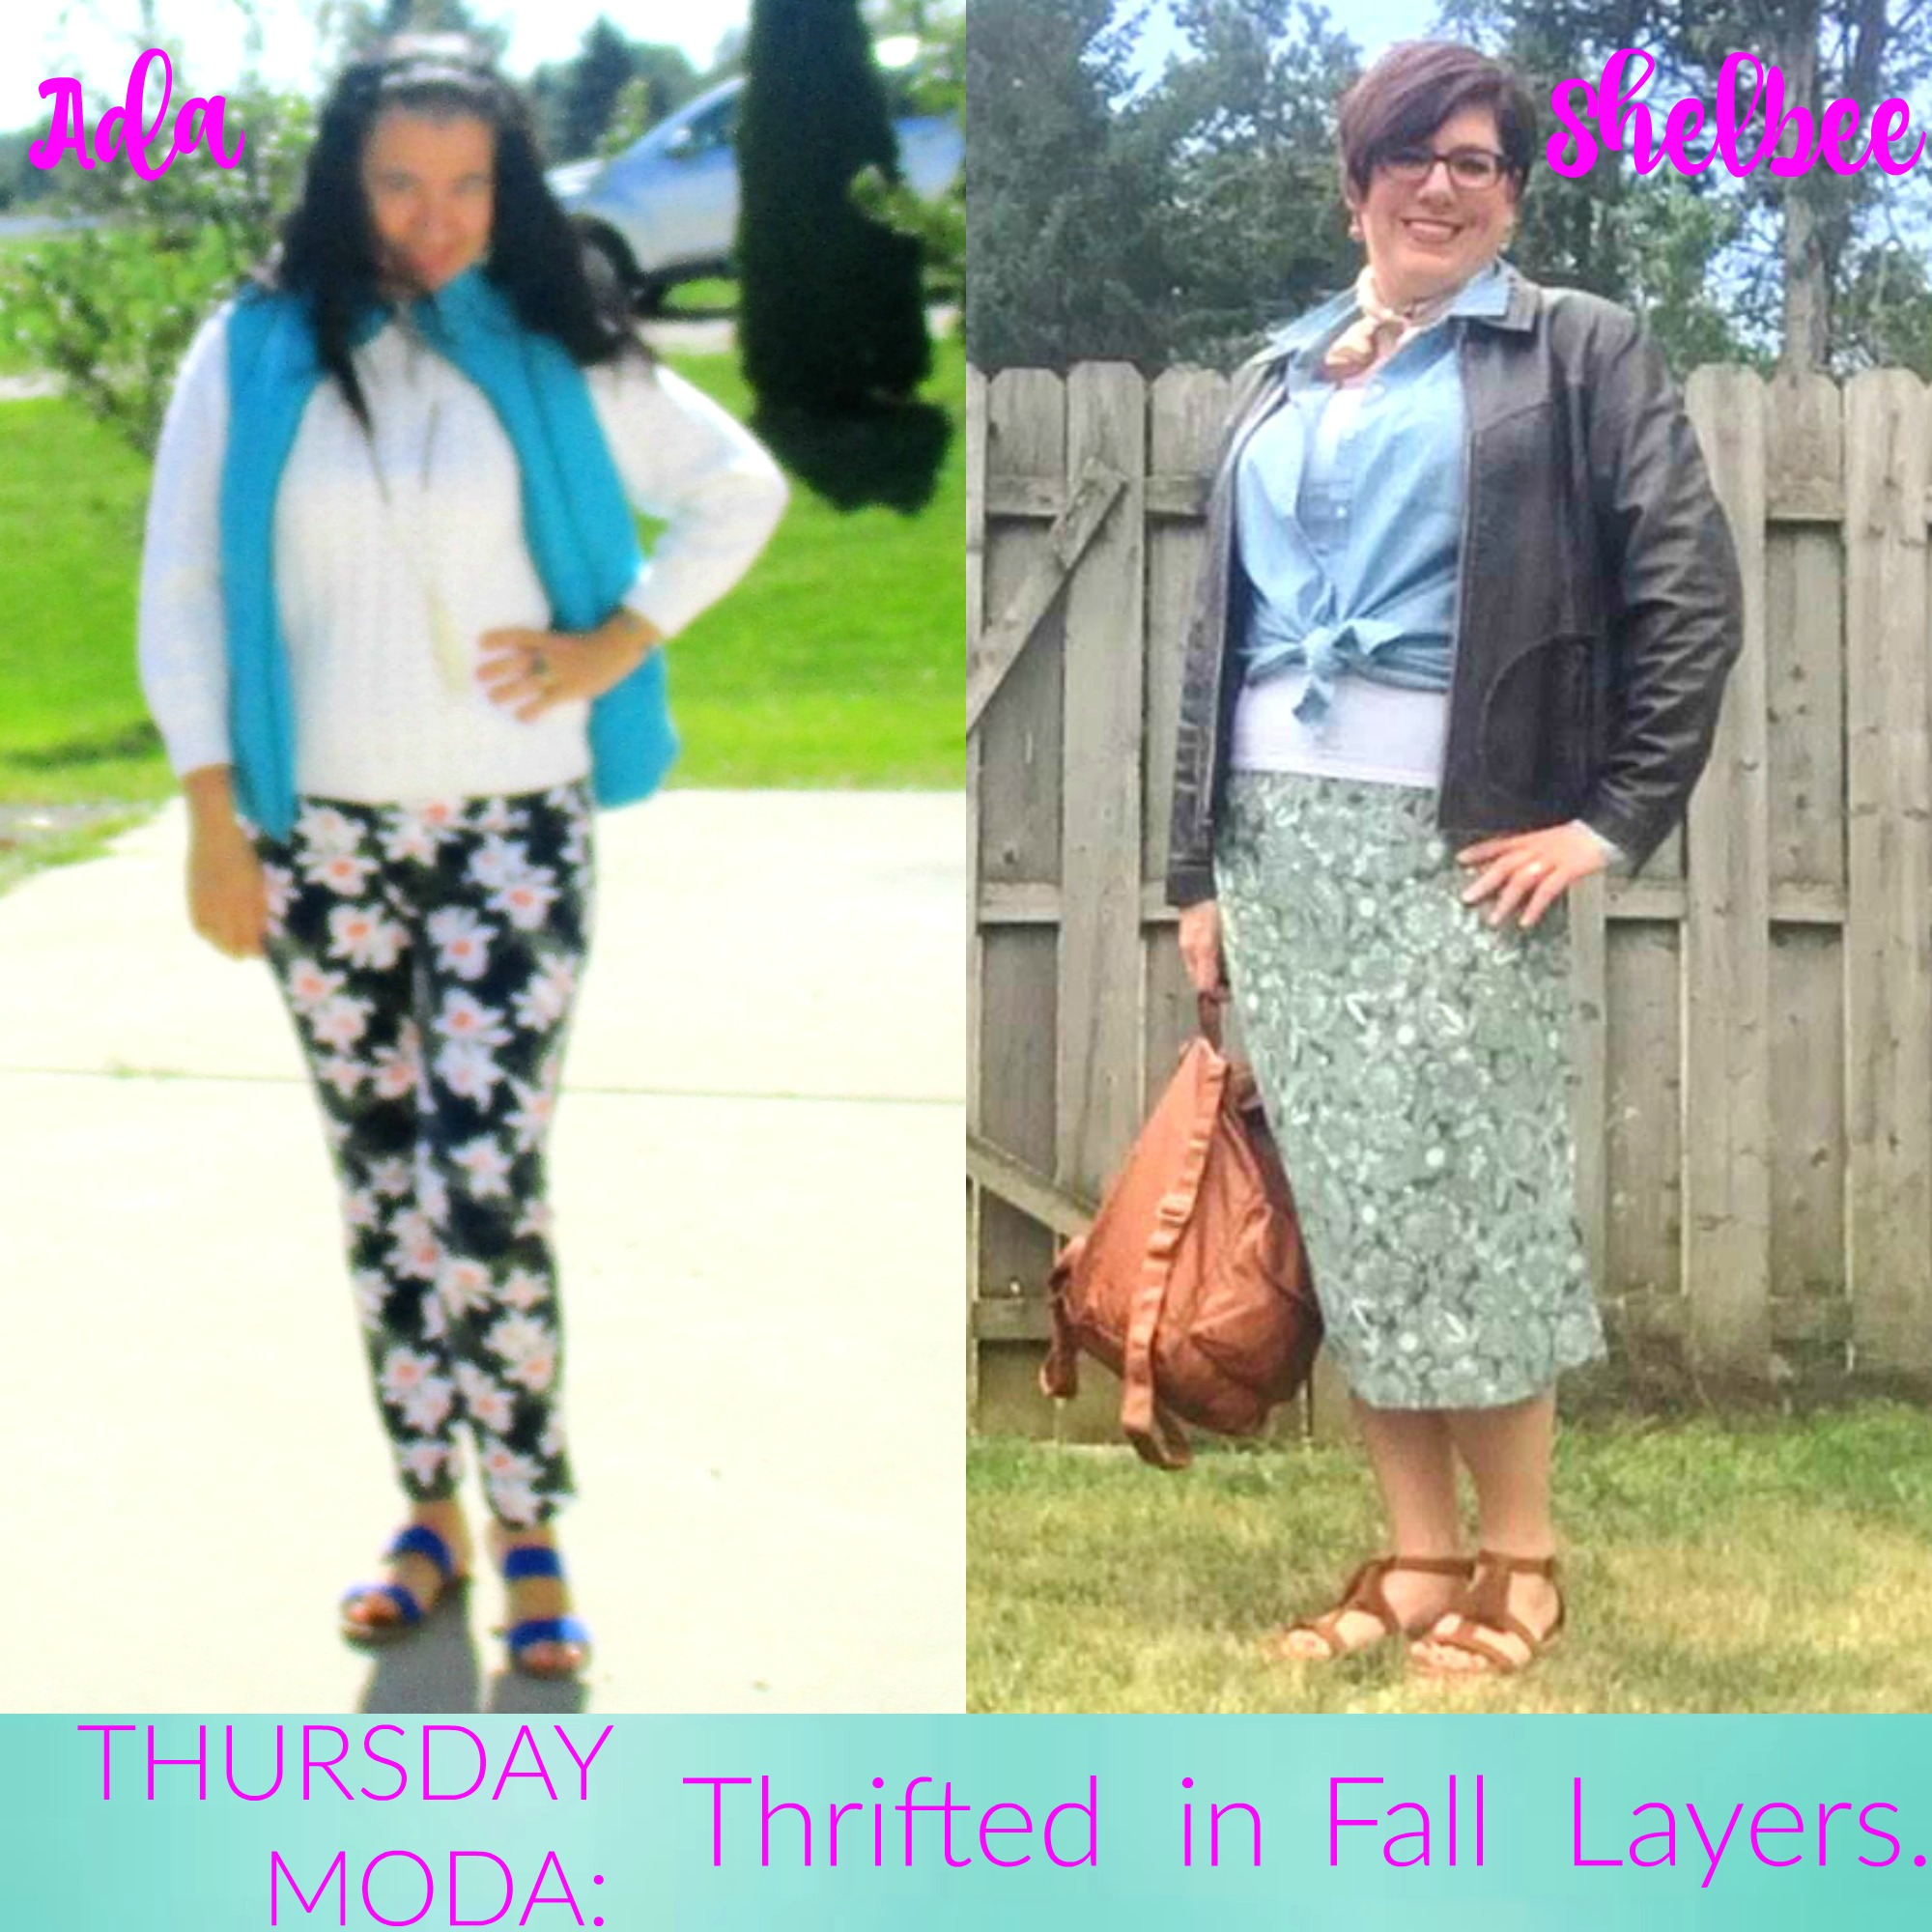 Thrifted in Fall Layers & Thursday Moda Link Up